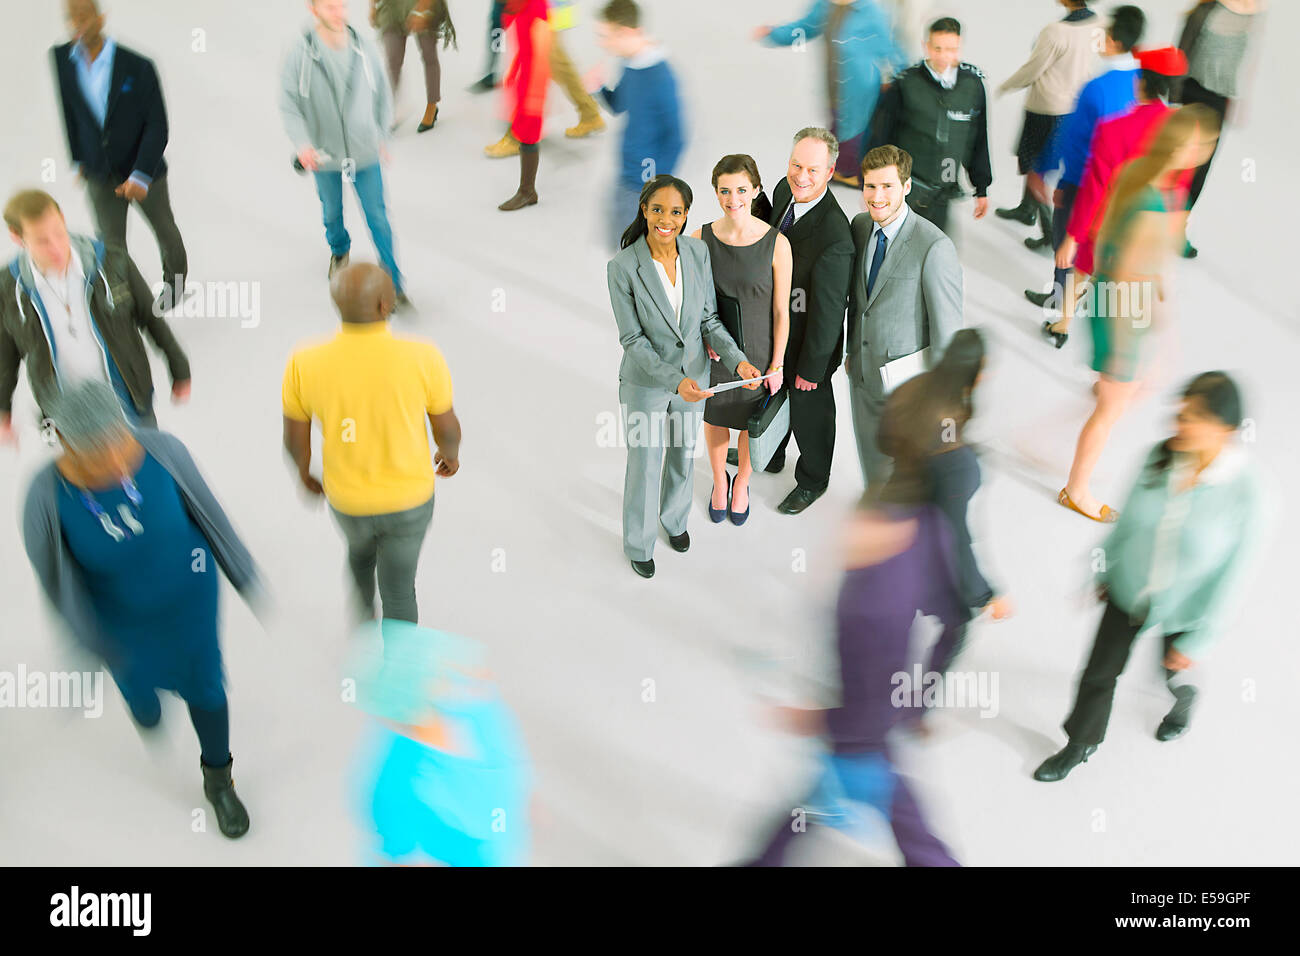 Portrait of business people among bustling crowd - Stock Image